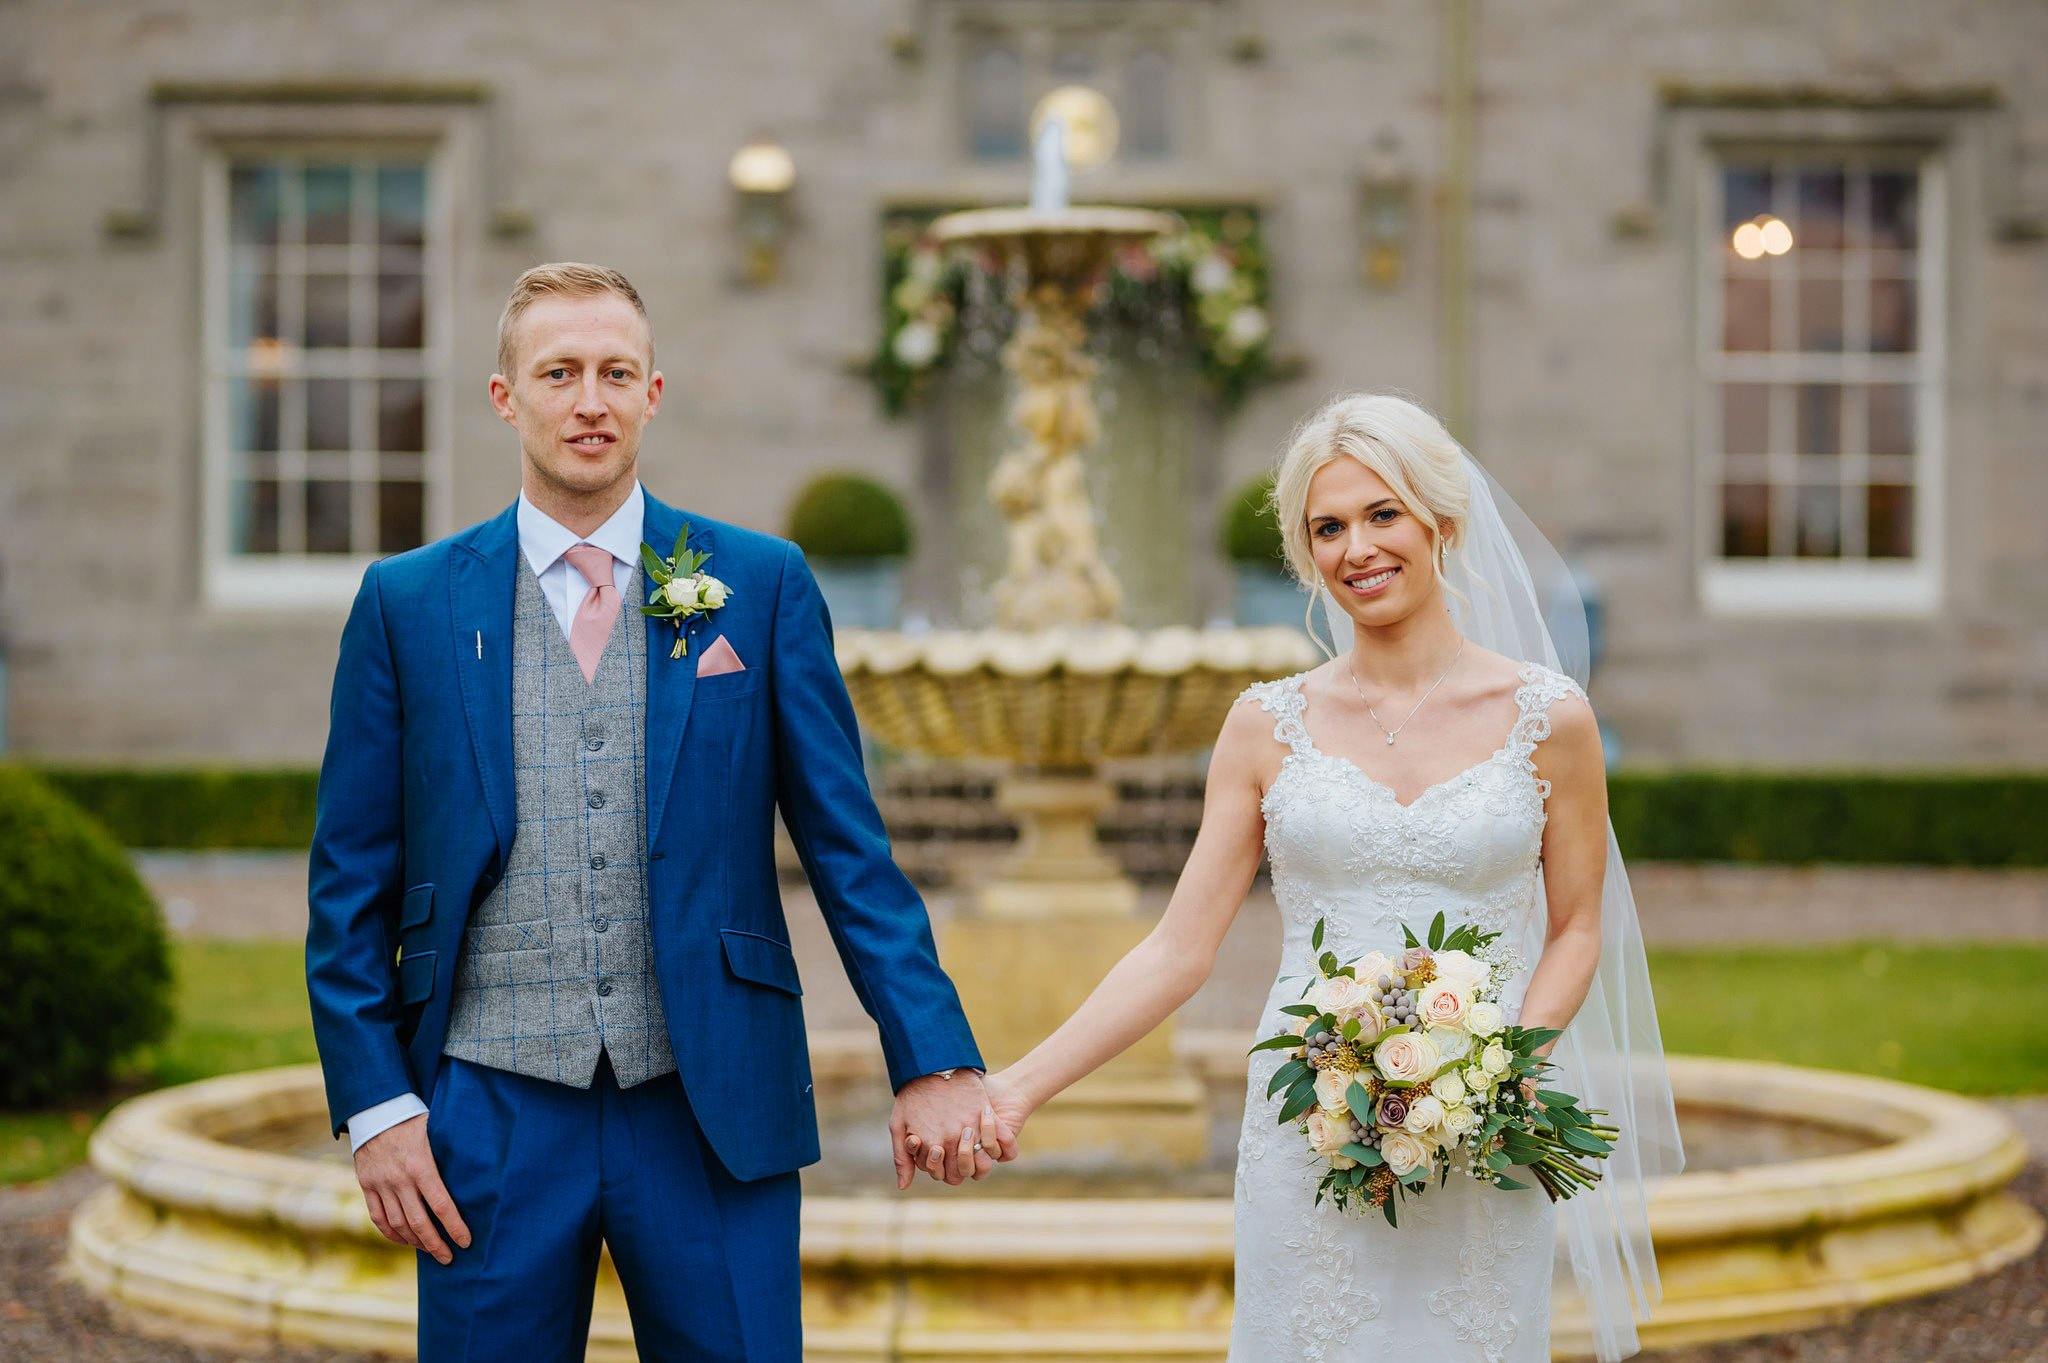 sigma 85mm art review wedding photography 121 - Sigma 85mm F1.4 ART review vs Wedding Photography